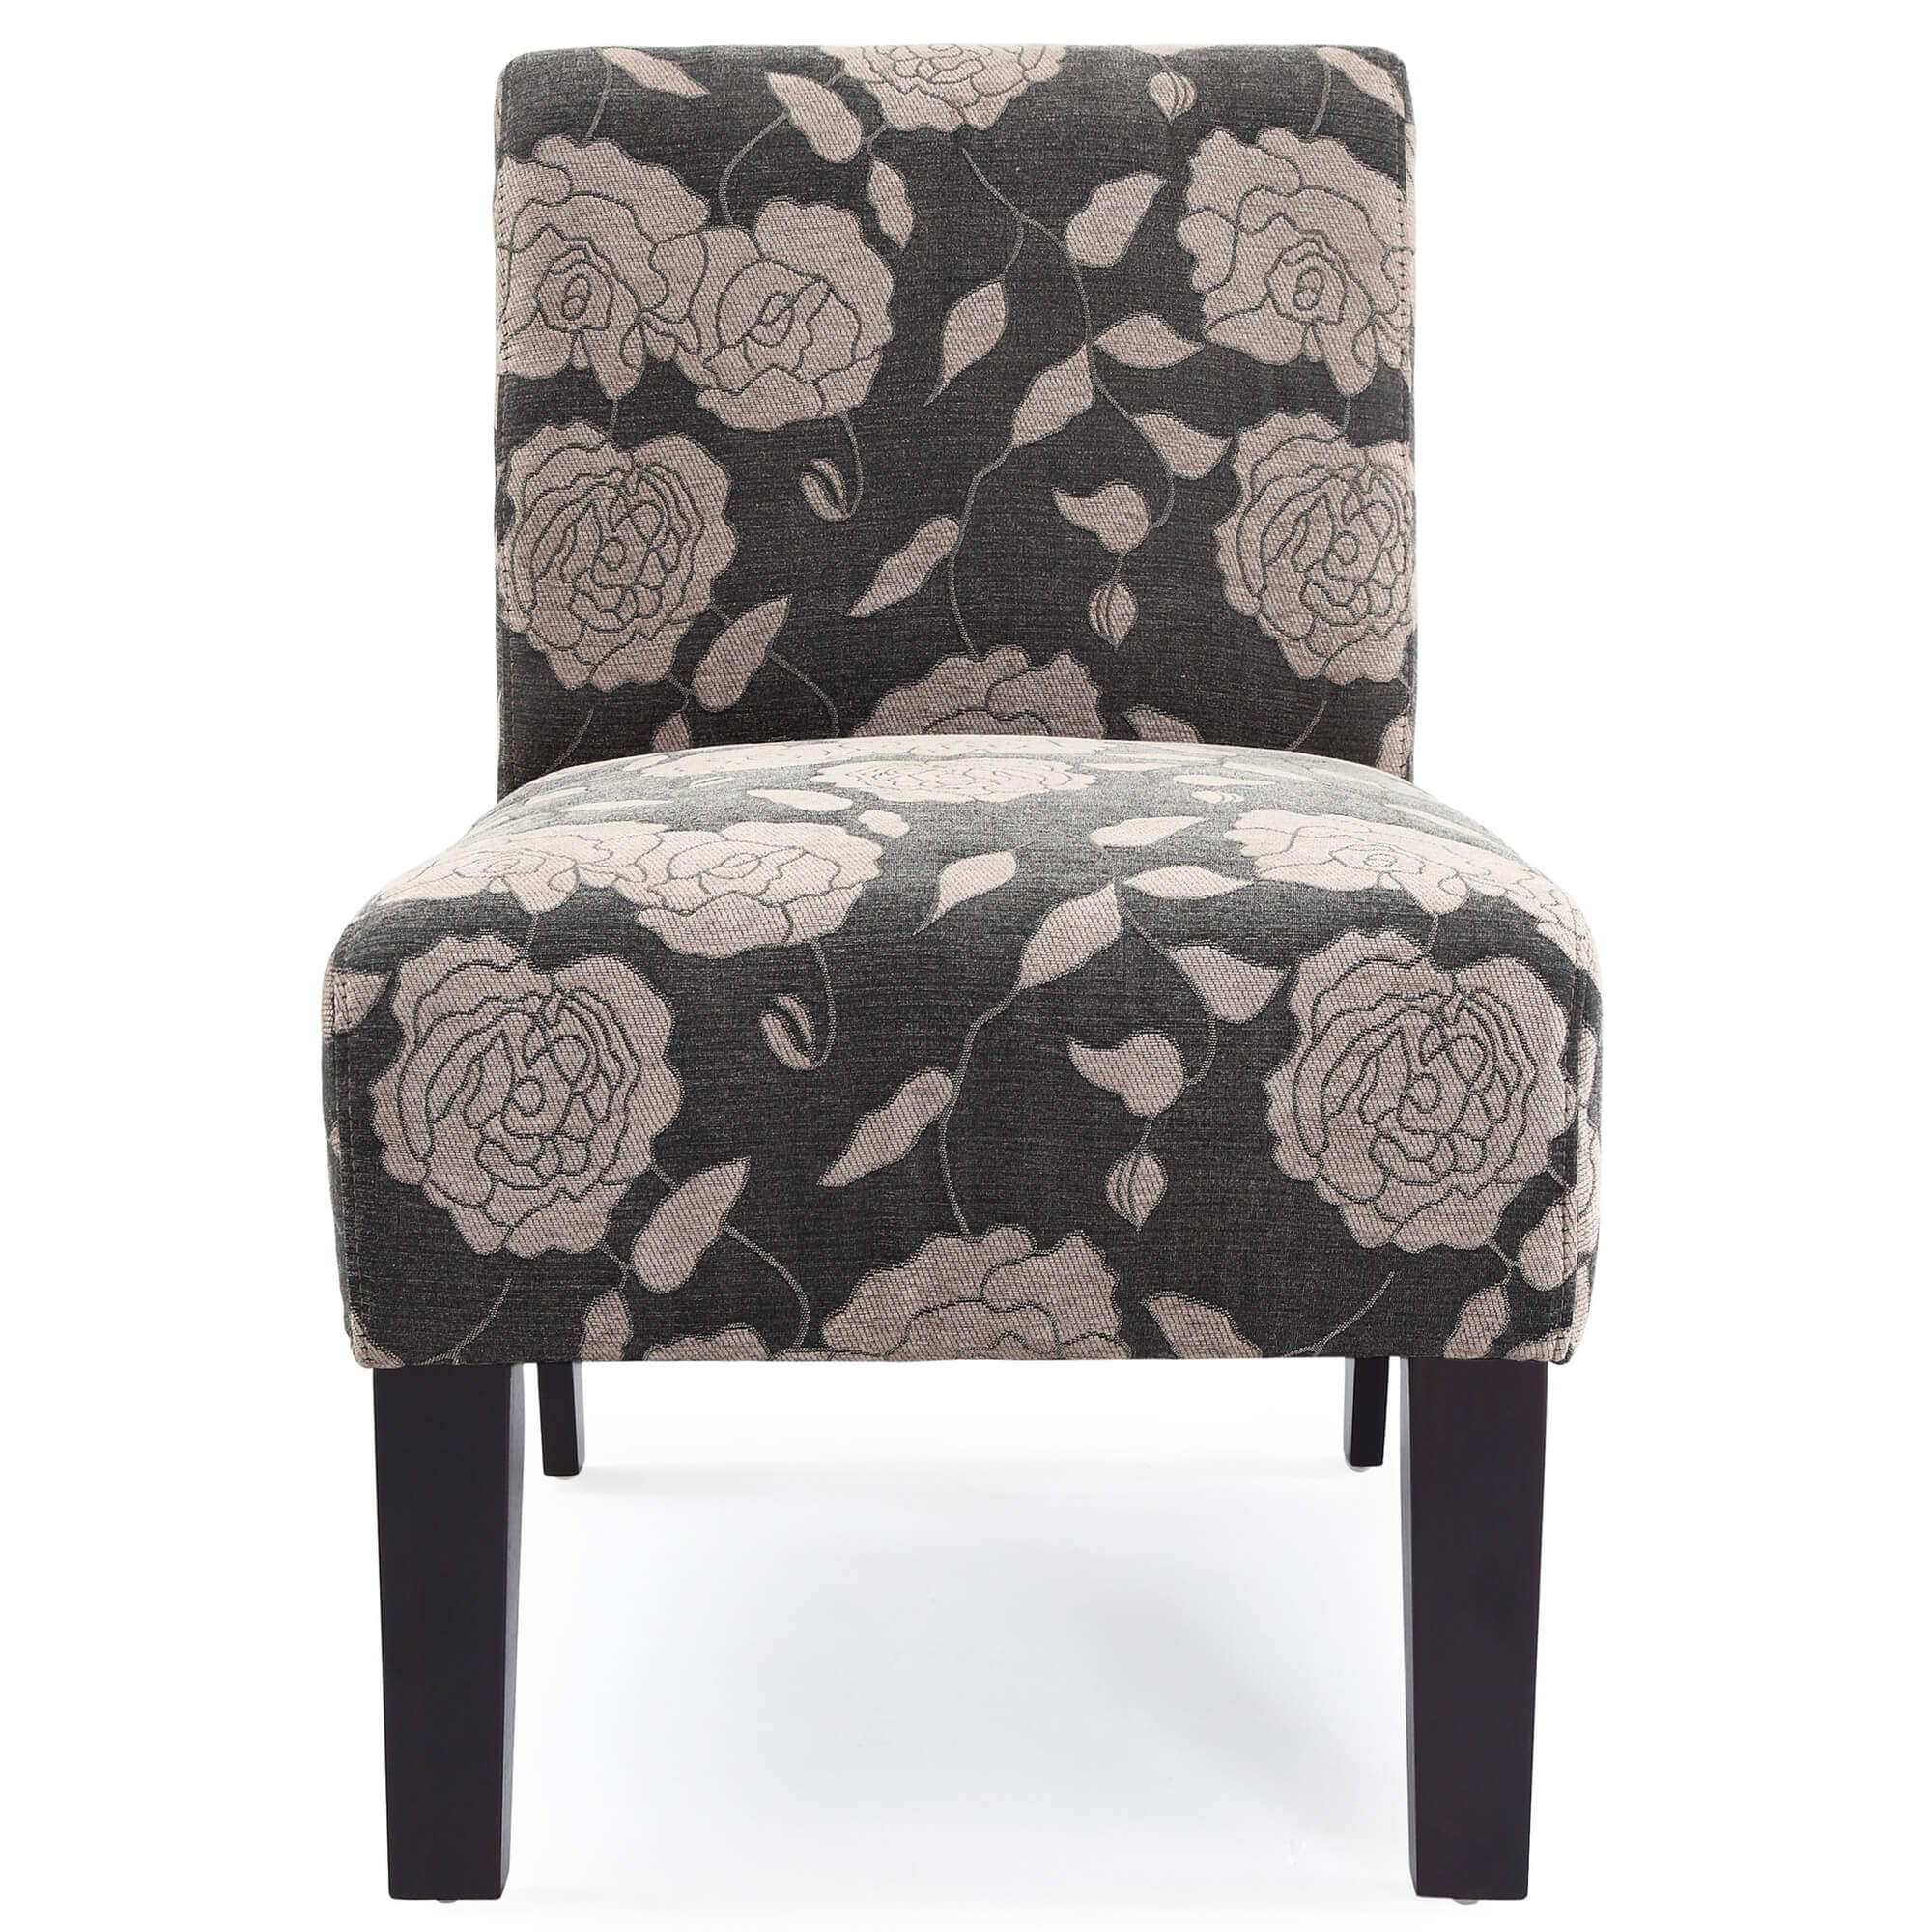 This Is A Floral Accent Chair With A Mainly Dark Pattern That Would Work  Well With